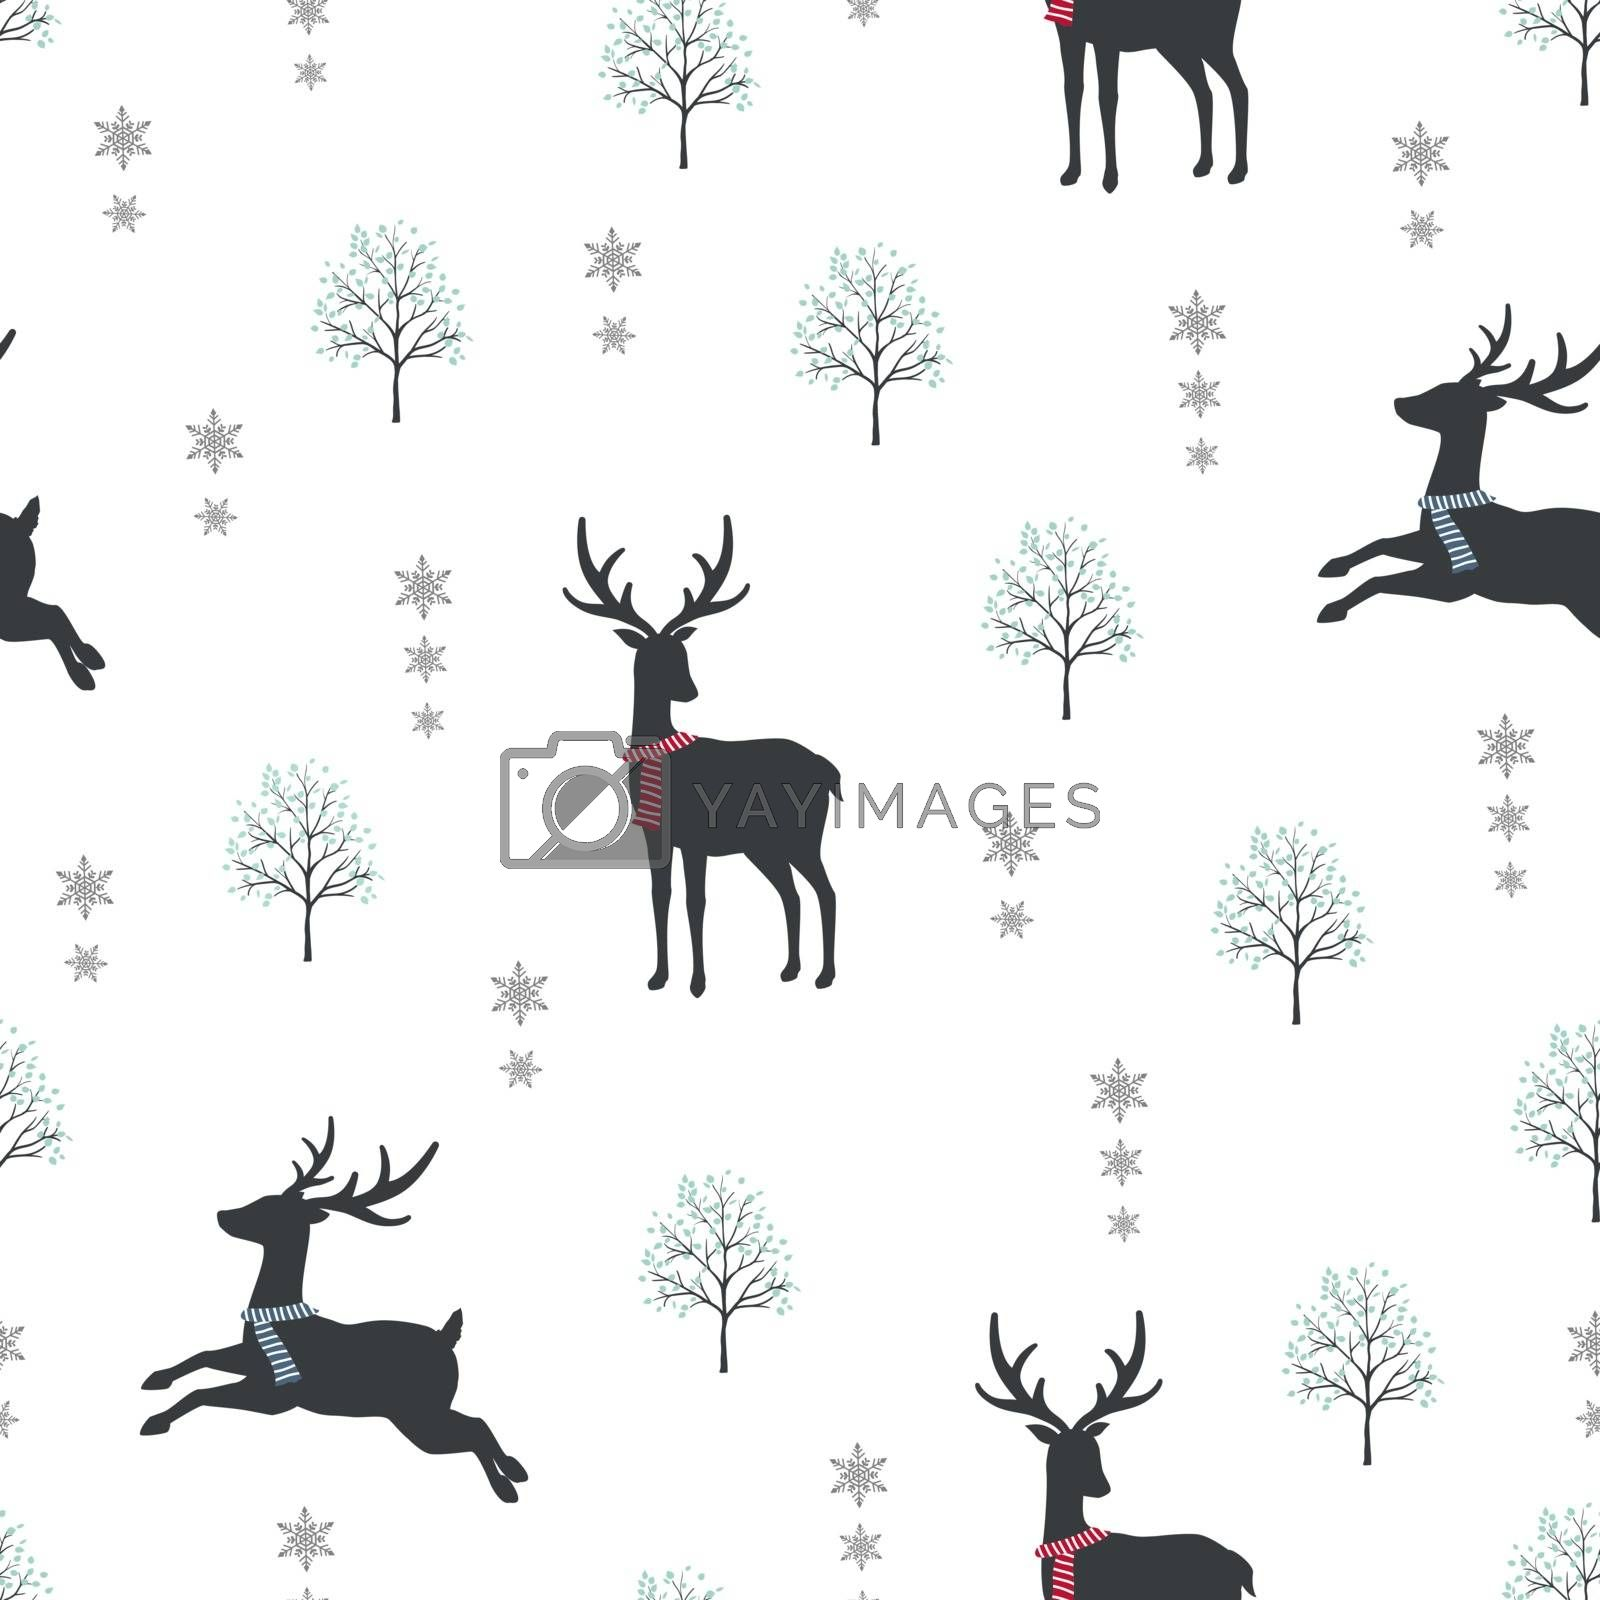 Cute deer on winter snow seamless pattern,for decorative Christmas holiday,wrapping paper,baby clothes,textile or all print by PIMPAKA